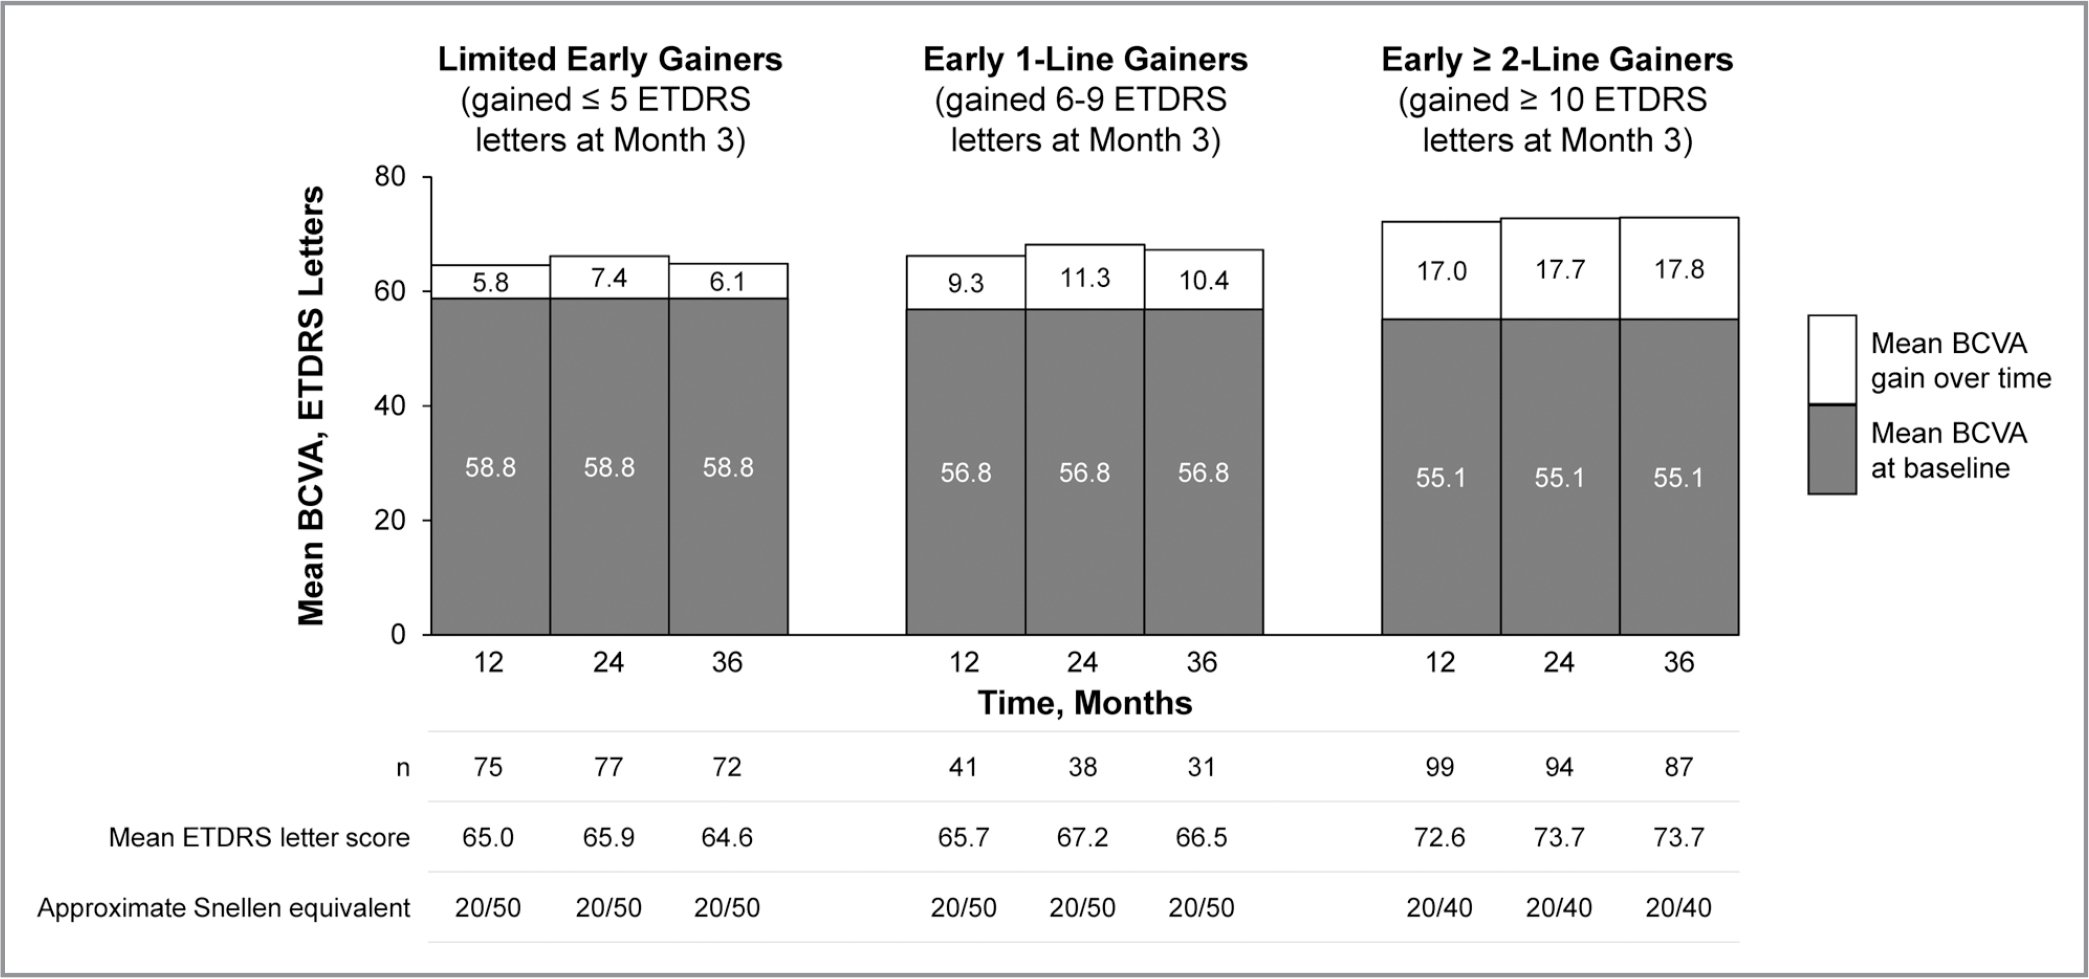 Mean baseline best-corrected visual acuity (BCVA) and mean BCVA gain over 36 months in limited early gainers (left), early 1-line gainers (center), and early ≥ 2-line gainers (right). Mean BCVA at baseline was measured in the overall population for each subgroup; mean BCVA at each time point (Early Treatment Diabetic Retinopathy Study [ETDRS]) letter score and approximate Snellen equivalent) was measured in patients with sufficient follow-up.